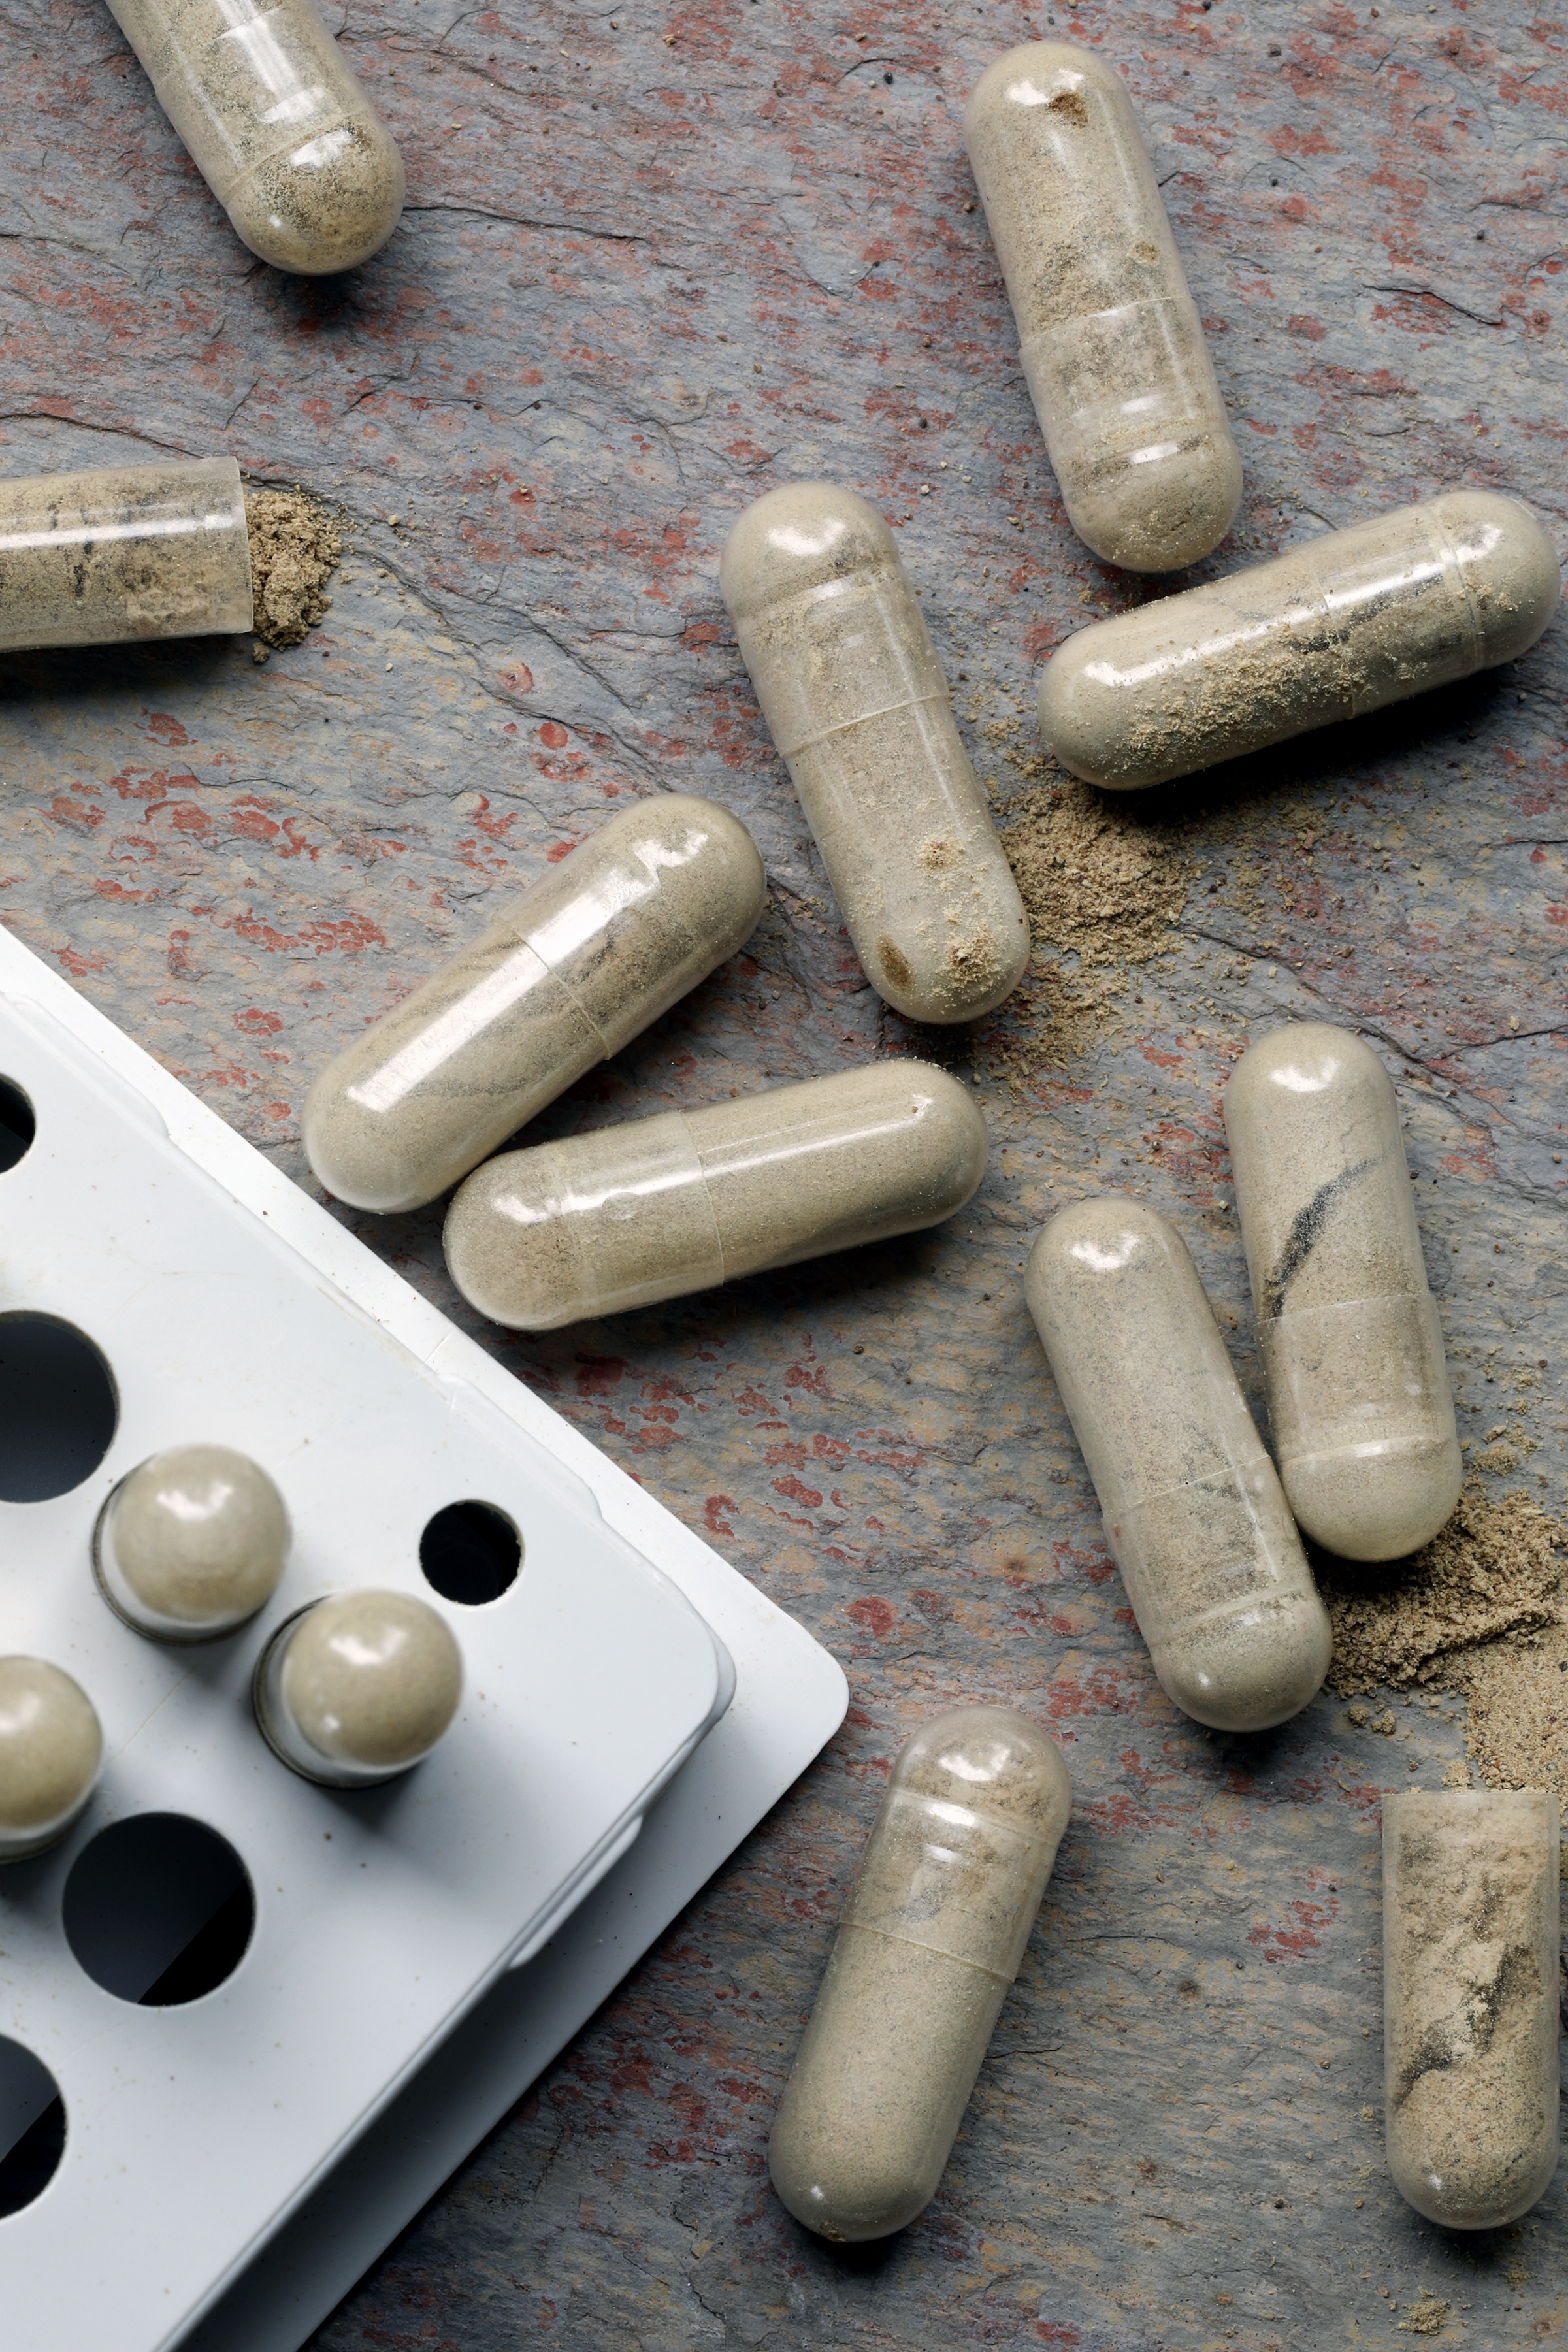 Capsules filled with triphala powder laying out on granite counter